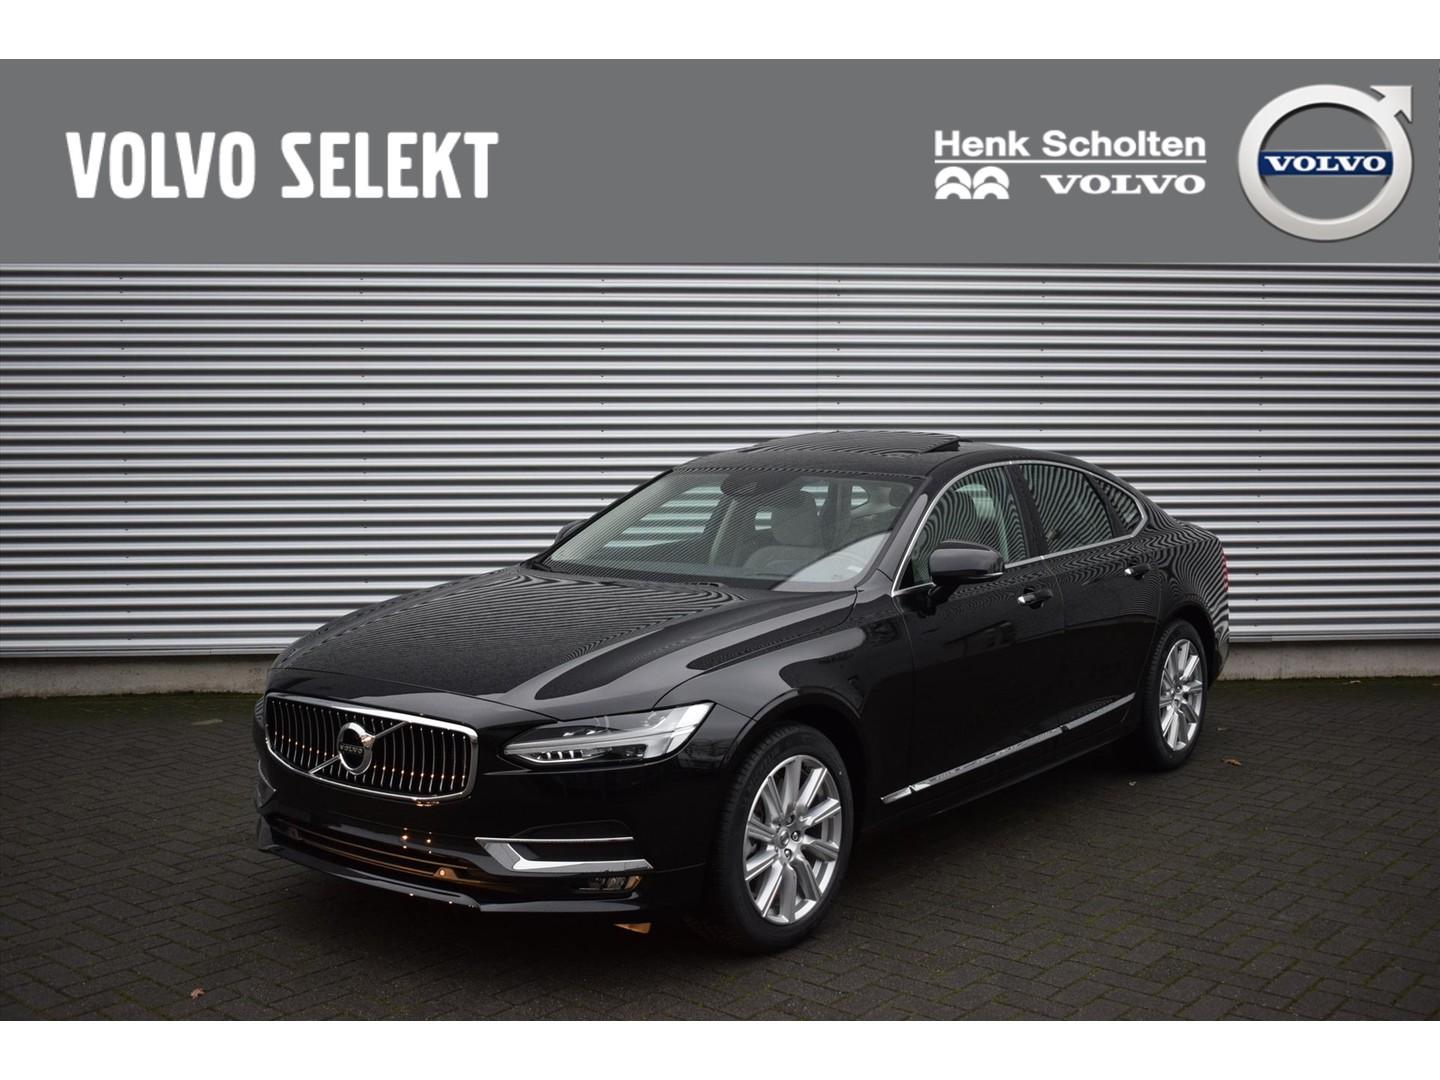 Volvo S90 T4 190pk aut(8) inscription intellisafe open dak